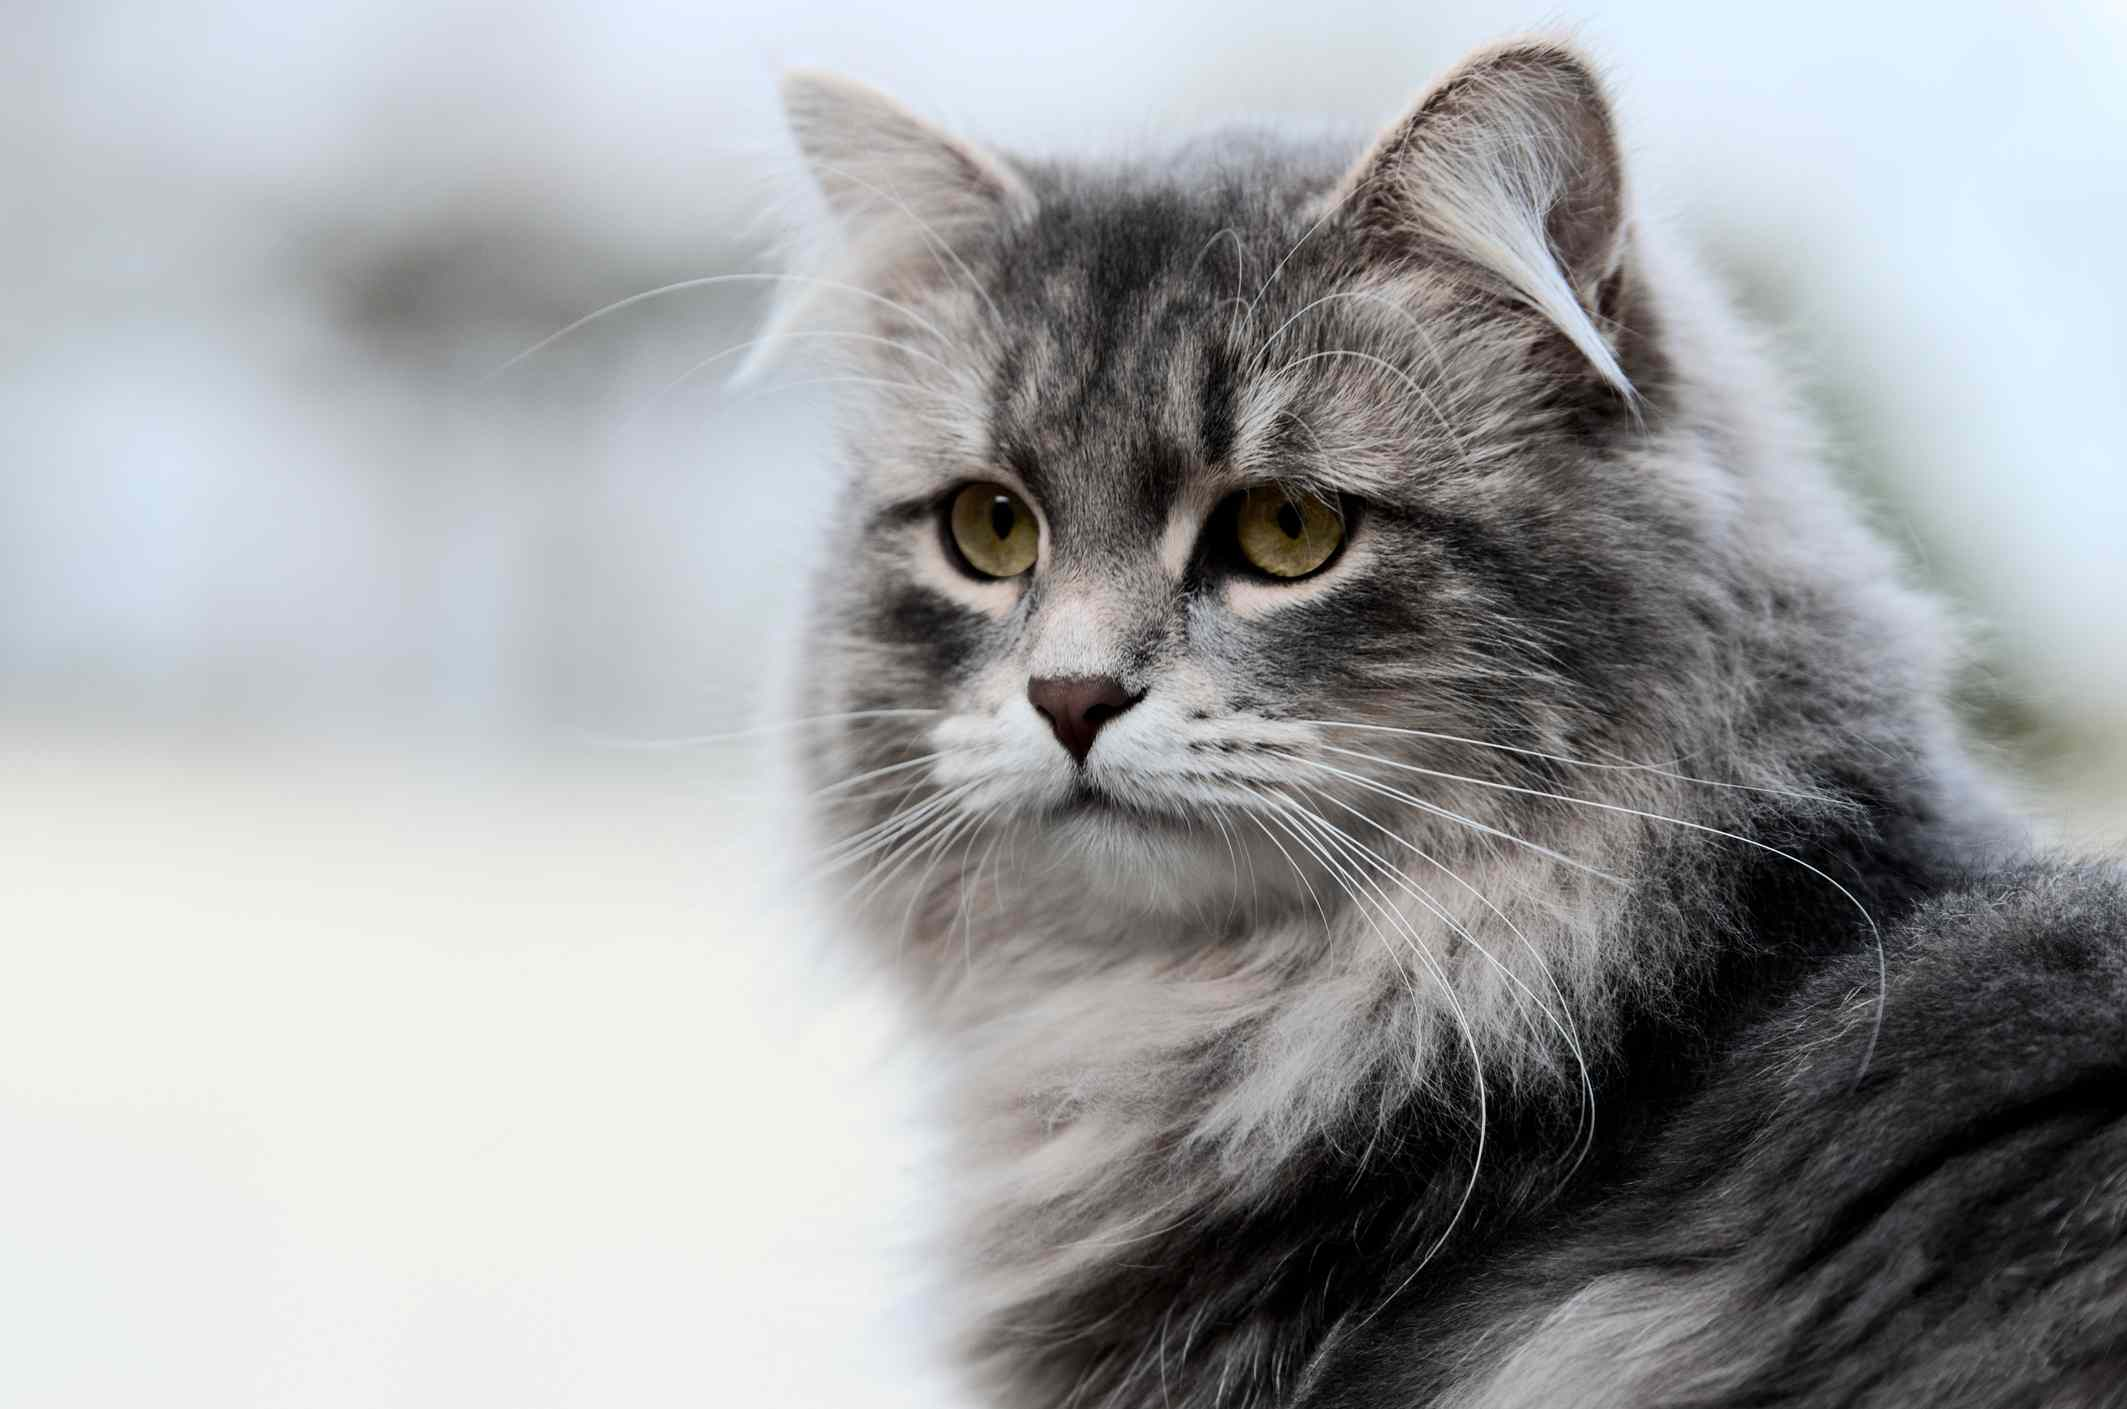 Siberian cat against blurred gray background